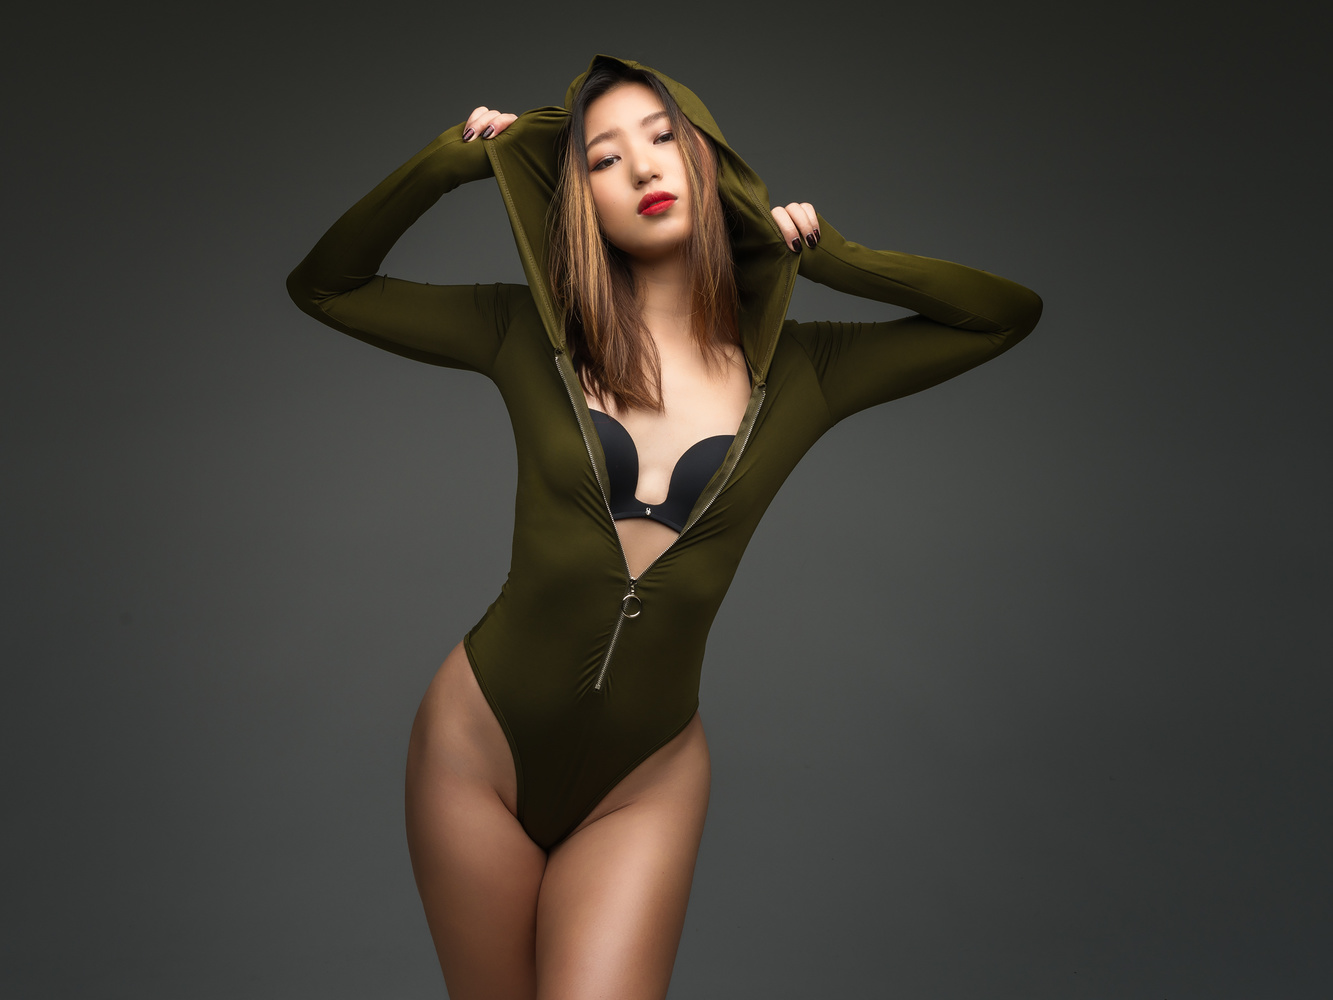 Fang Fei Lan in a Color Pose by Daniel Medley